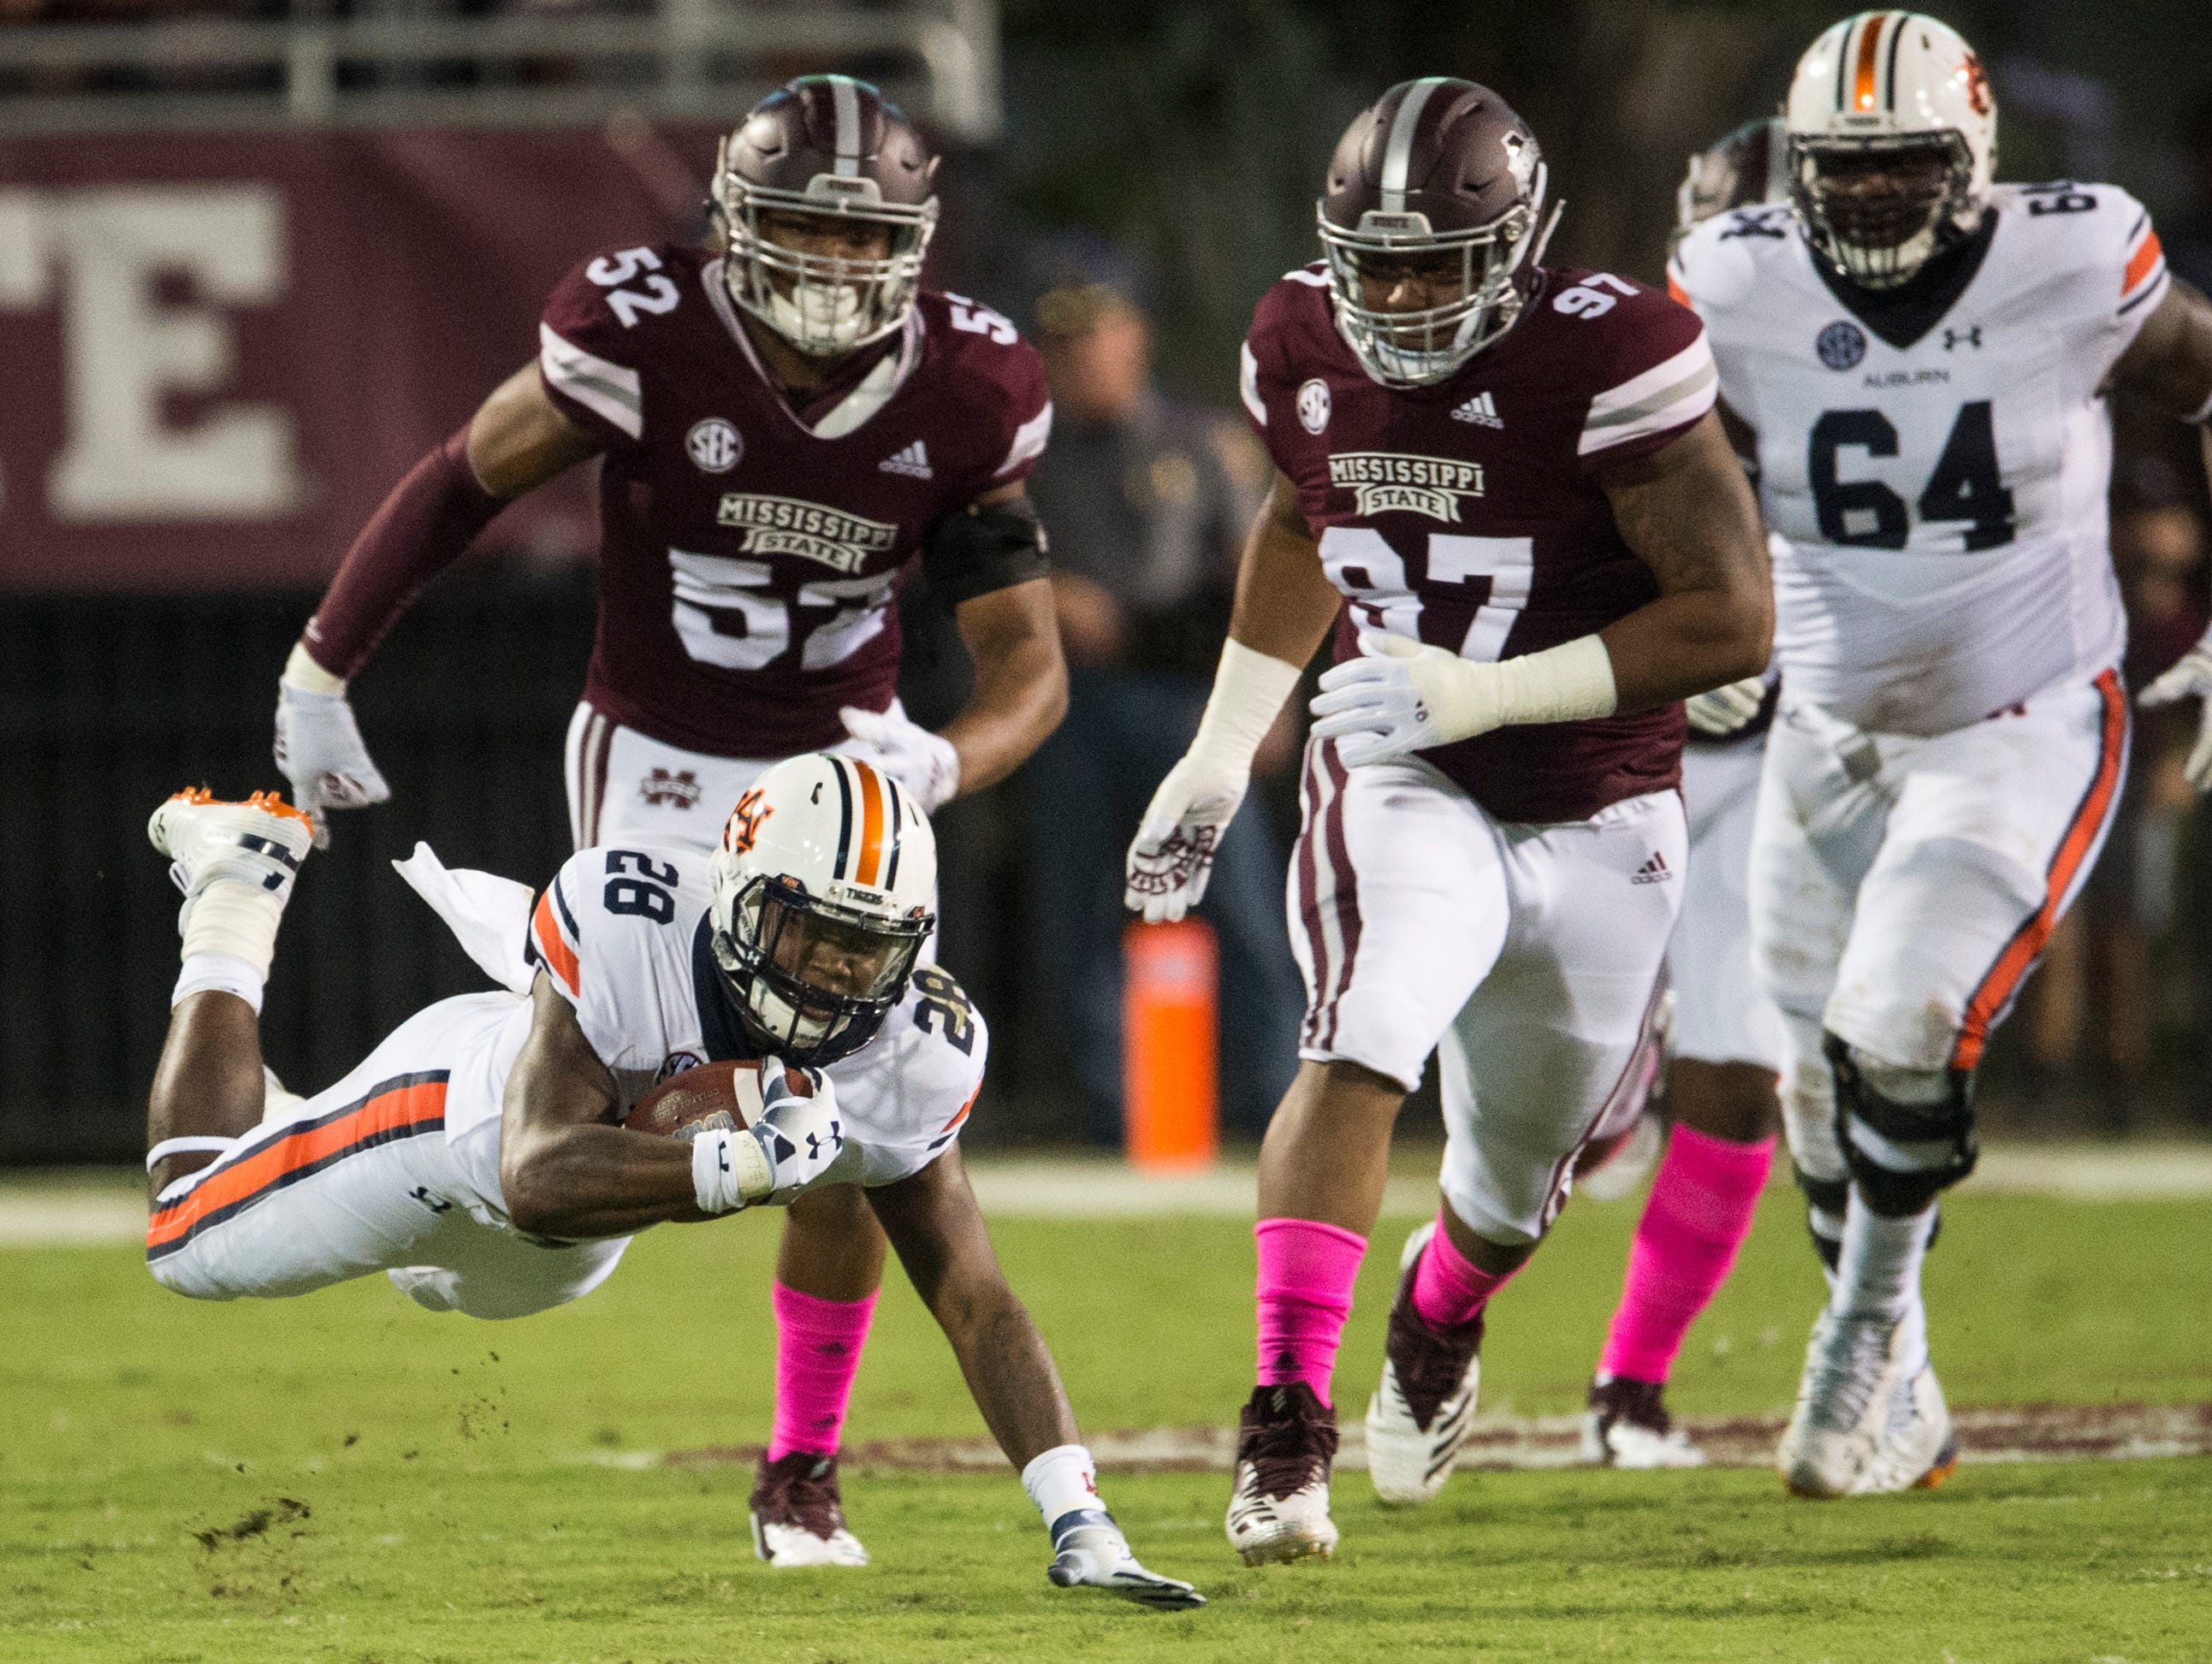 Auburn's JaTarvious Whitlow (28) falls forward for a few extra yards against Mississippi State at Davis Wade Stadium in Starkville, Miss., on Saturday, Oct. 6, 2018. Mississippi State leads Auburn 13-3 at halftime.